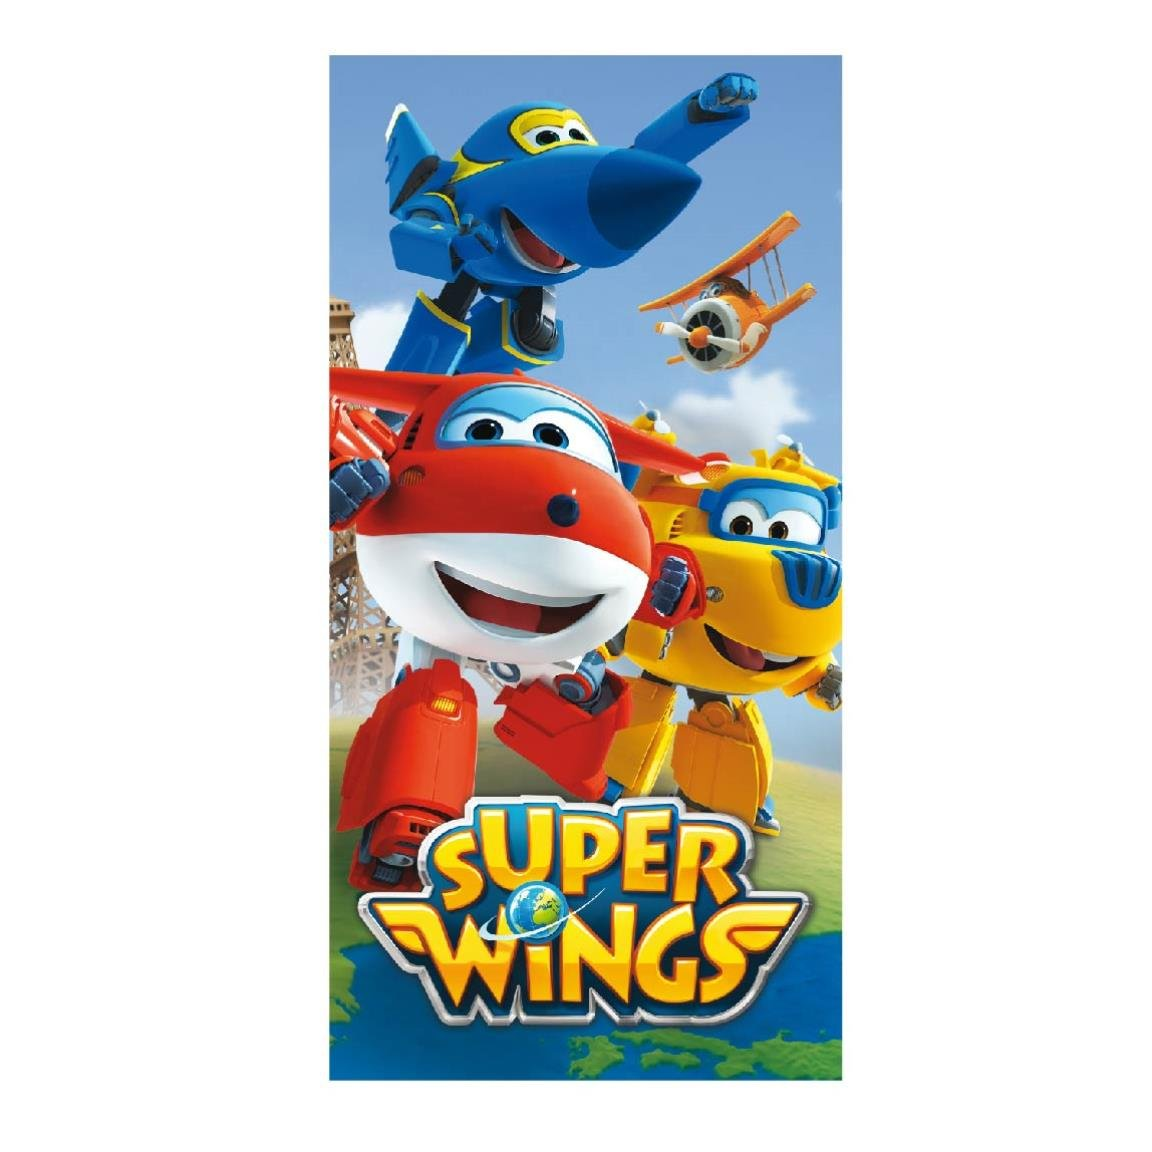 Made in Trade - Super Wings Serviette en Coton, 2200002166 Cerda